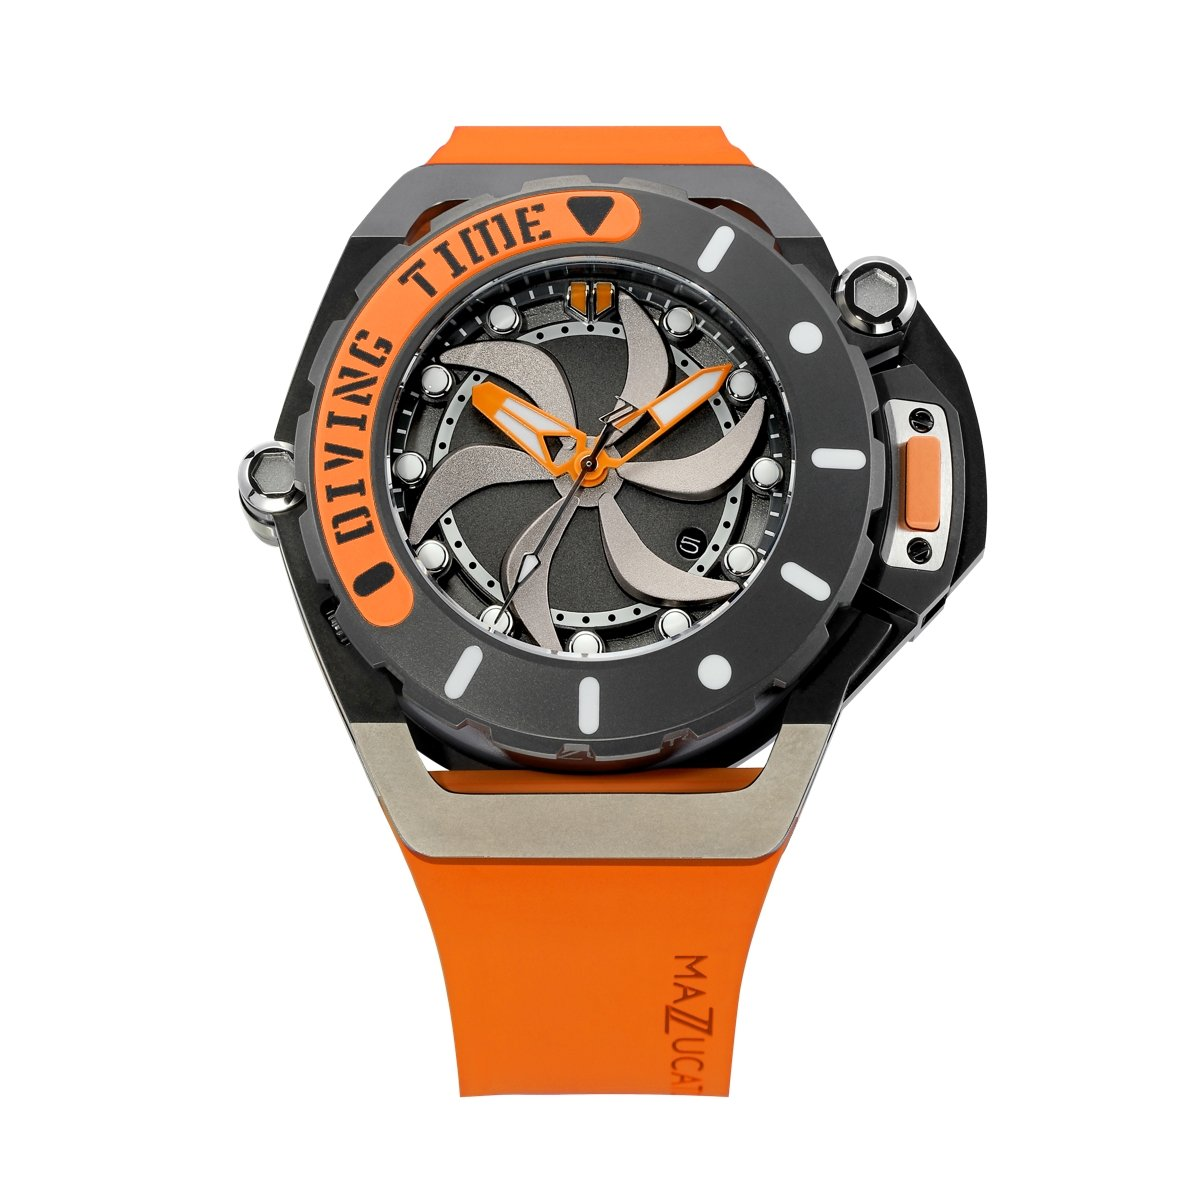 Mazzucato RIM Scuba Orange - Watches & Crystals